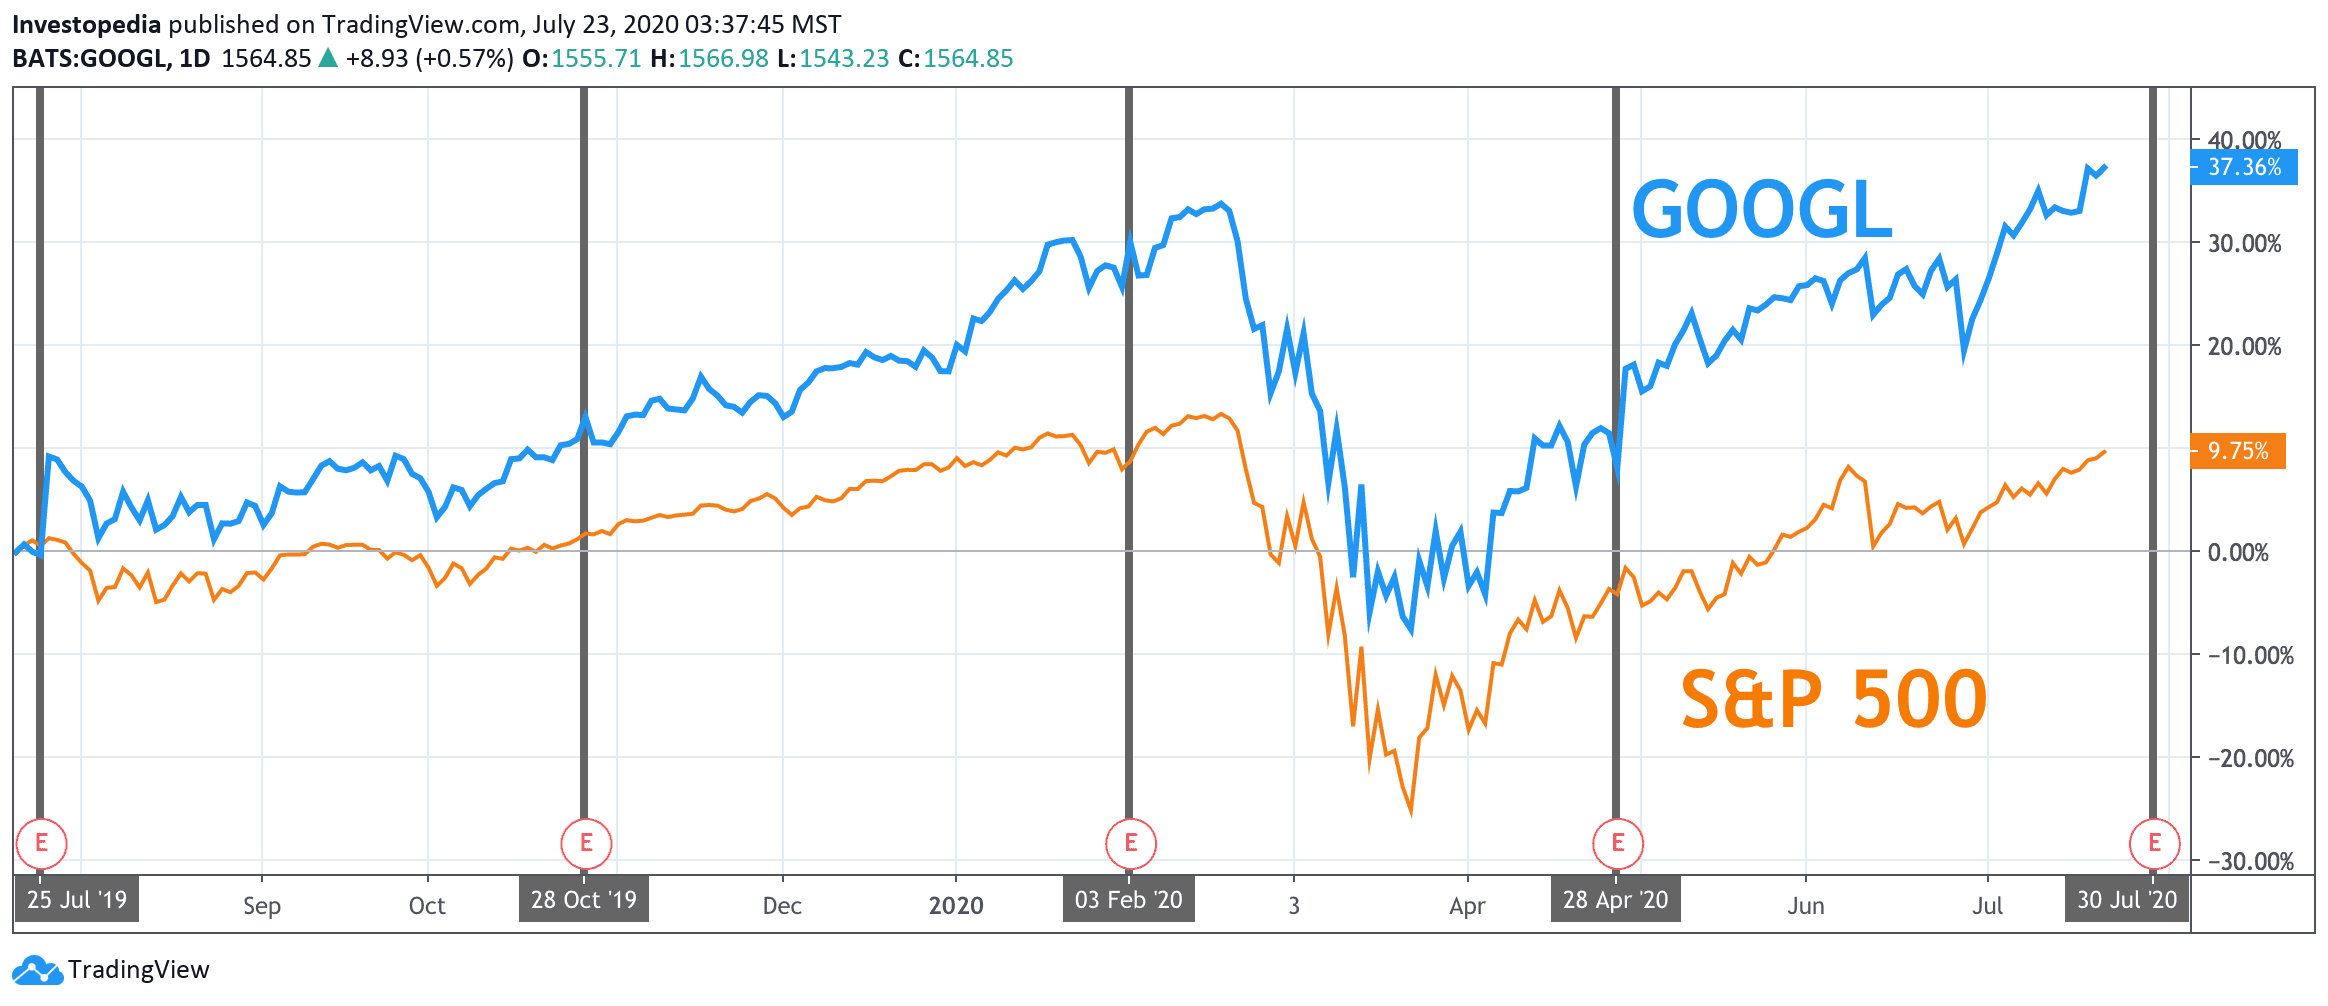 One Year Total Return of S&P 500 and Alphabet